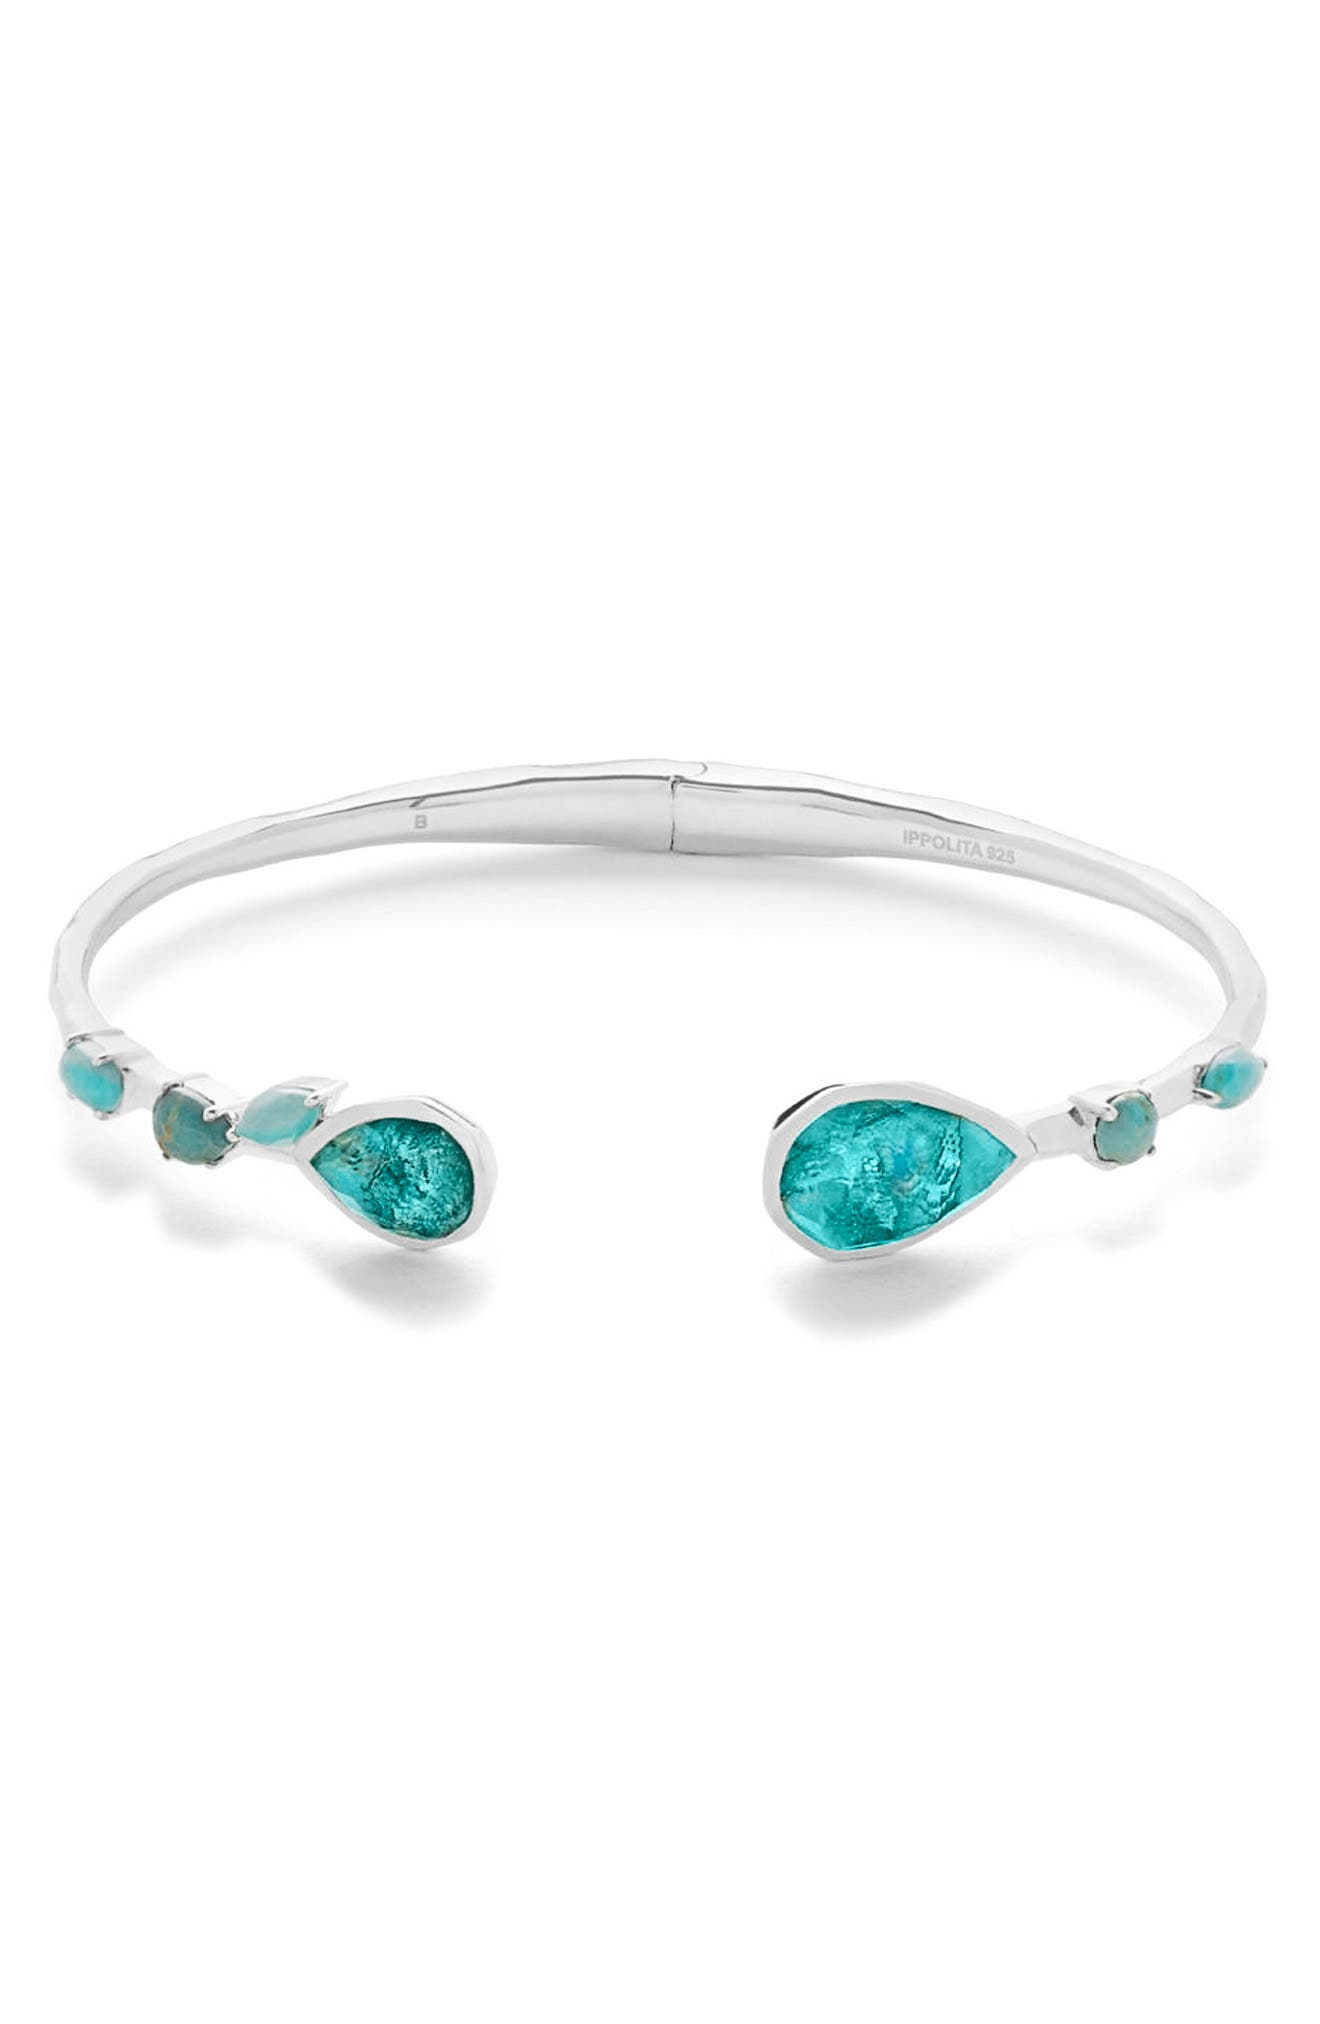 Rock Candy Skinny Cuff,                         Main,                         color, Turquoise